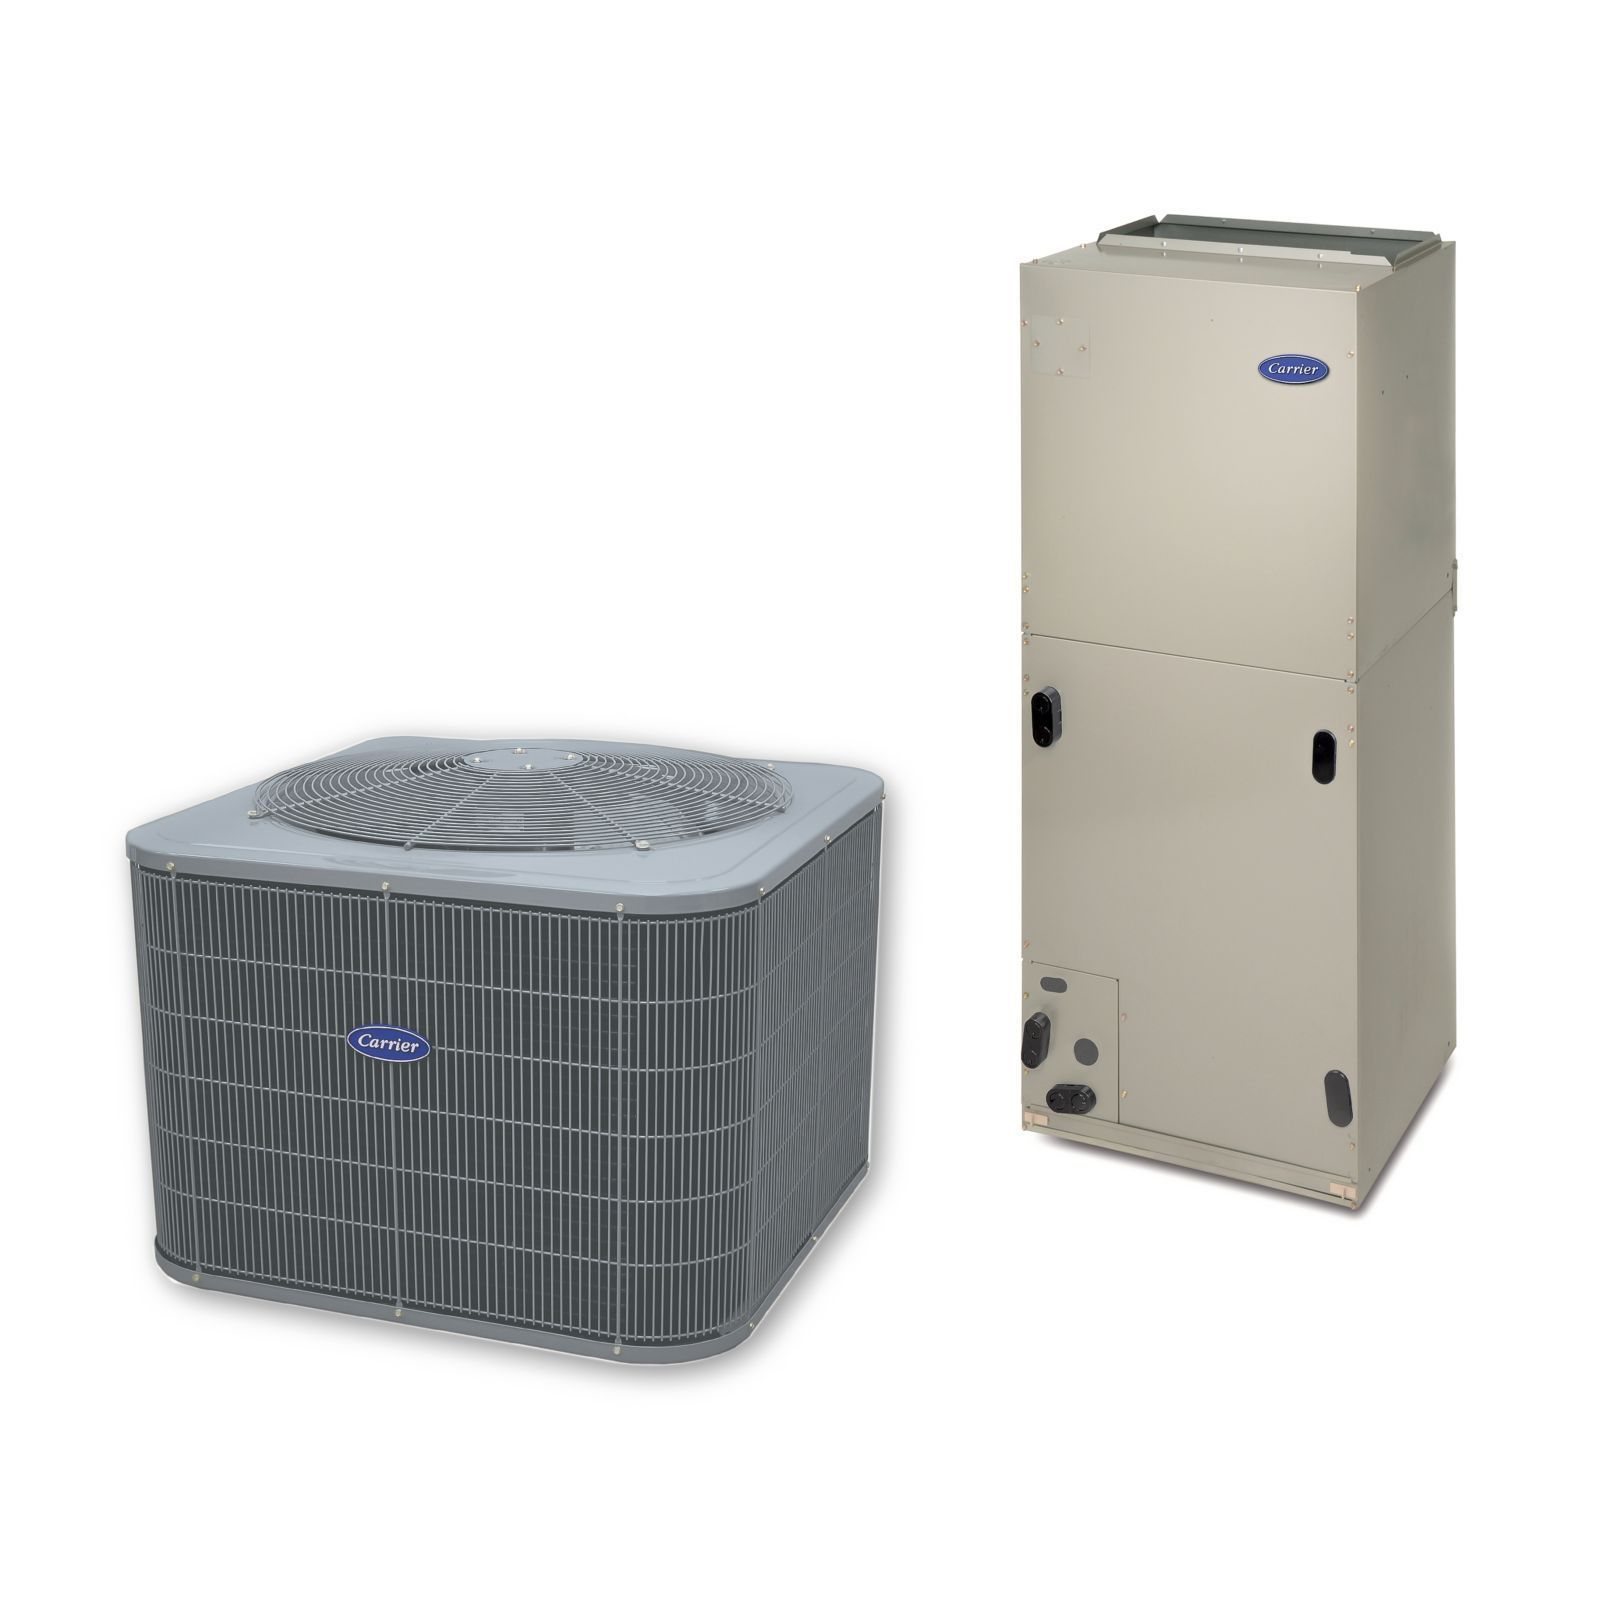 Carrier Performance 2 Ton 16 Seer Heat Pump System, Carrier Heat Pump - DIY Comfort Depot